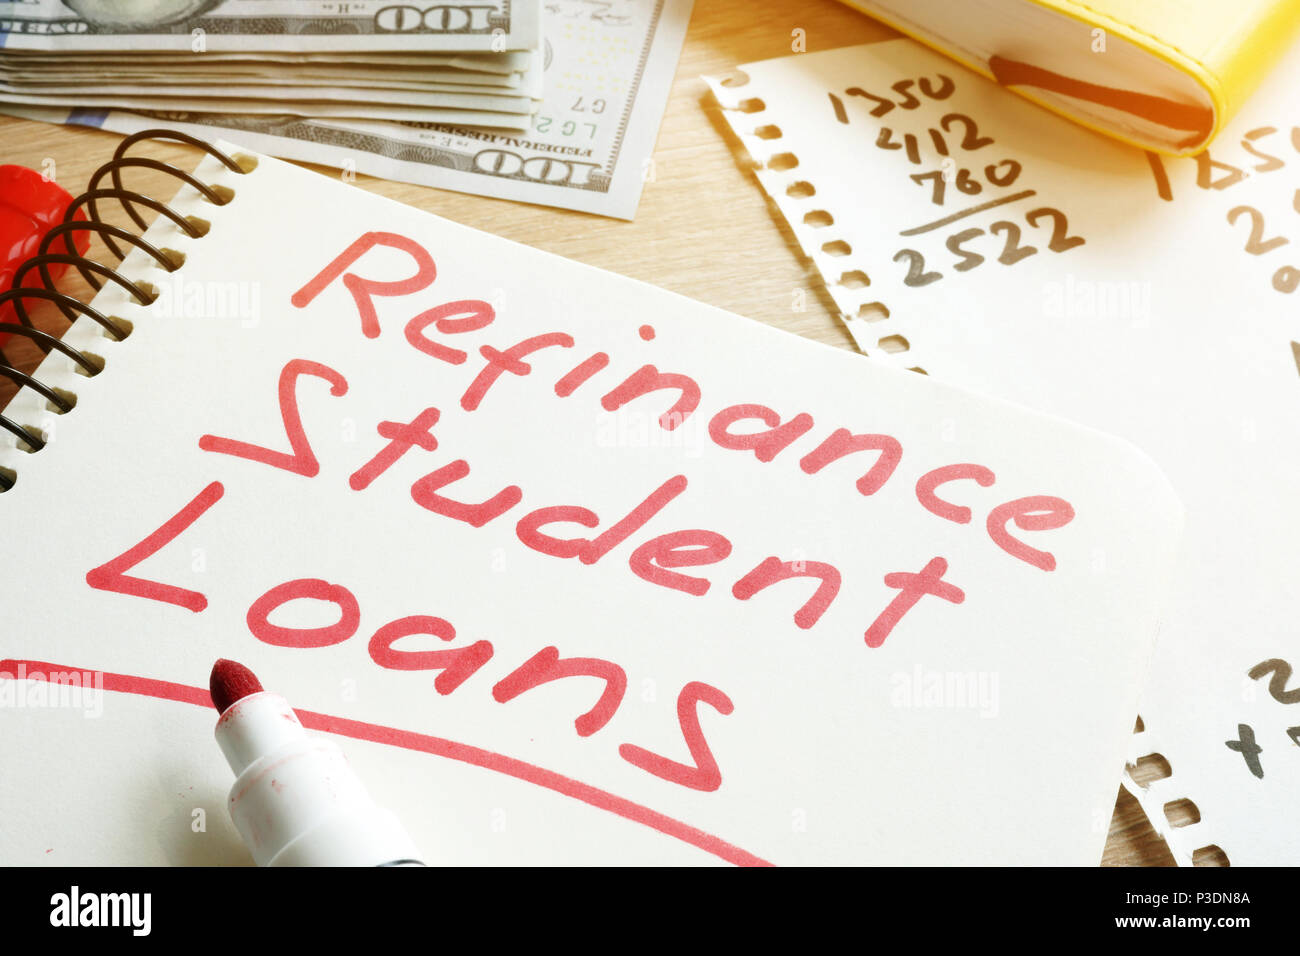 Refinance Student Loans >> Refinance Student Loans Form On A Desk Stock Photo